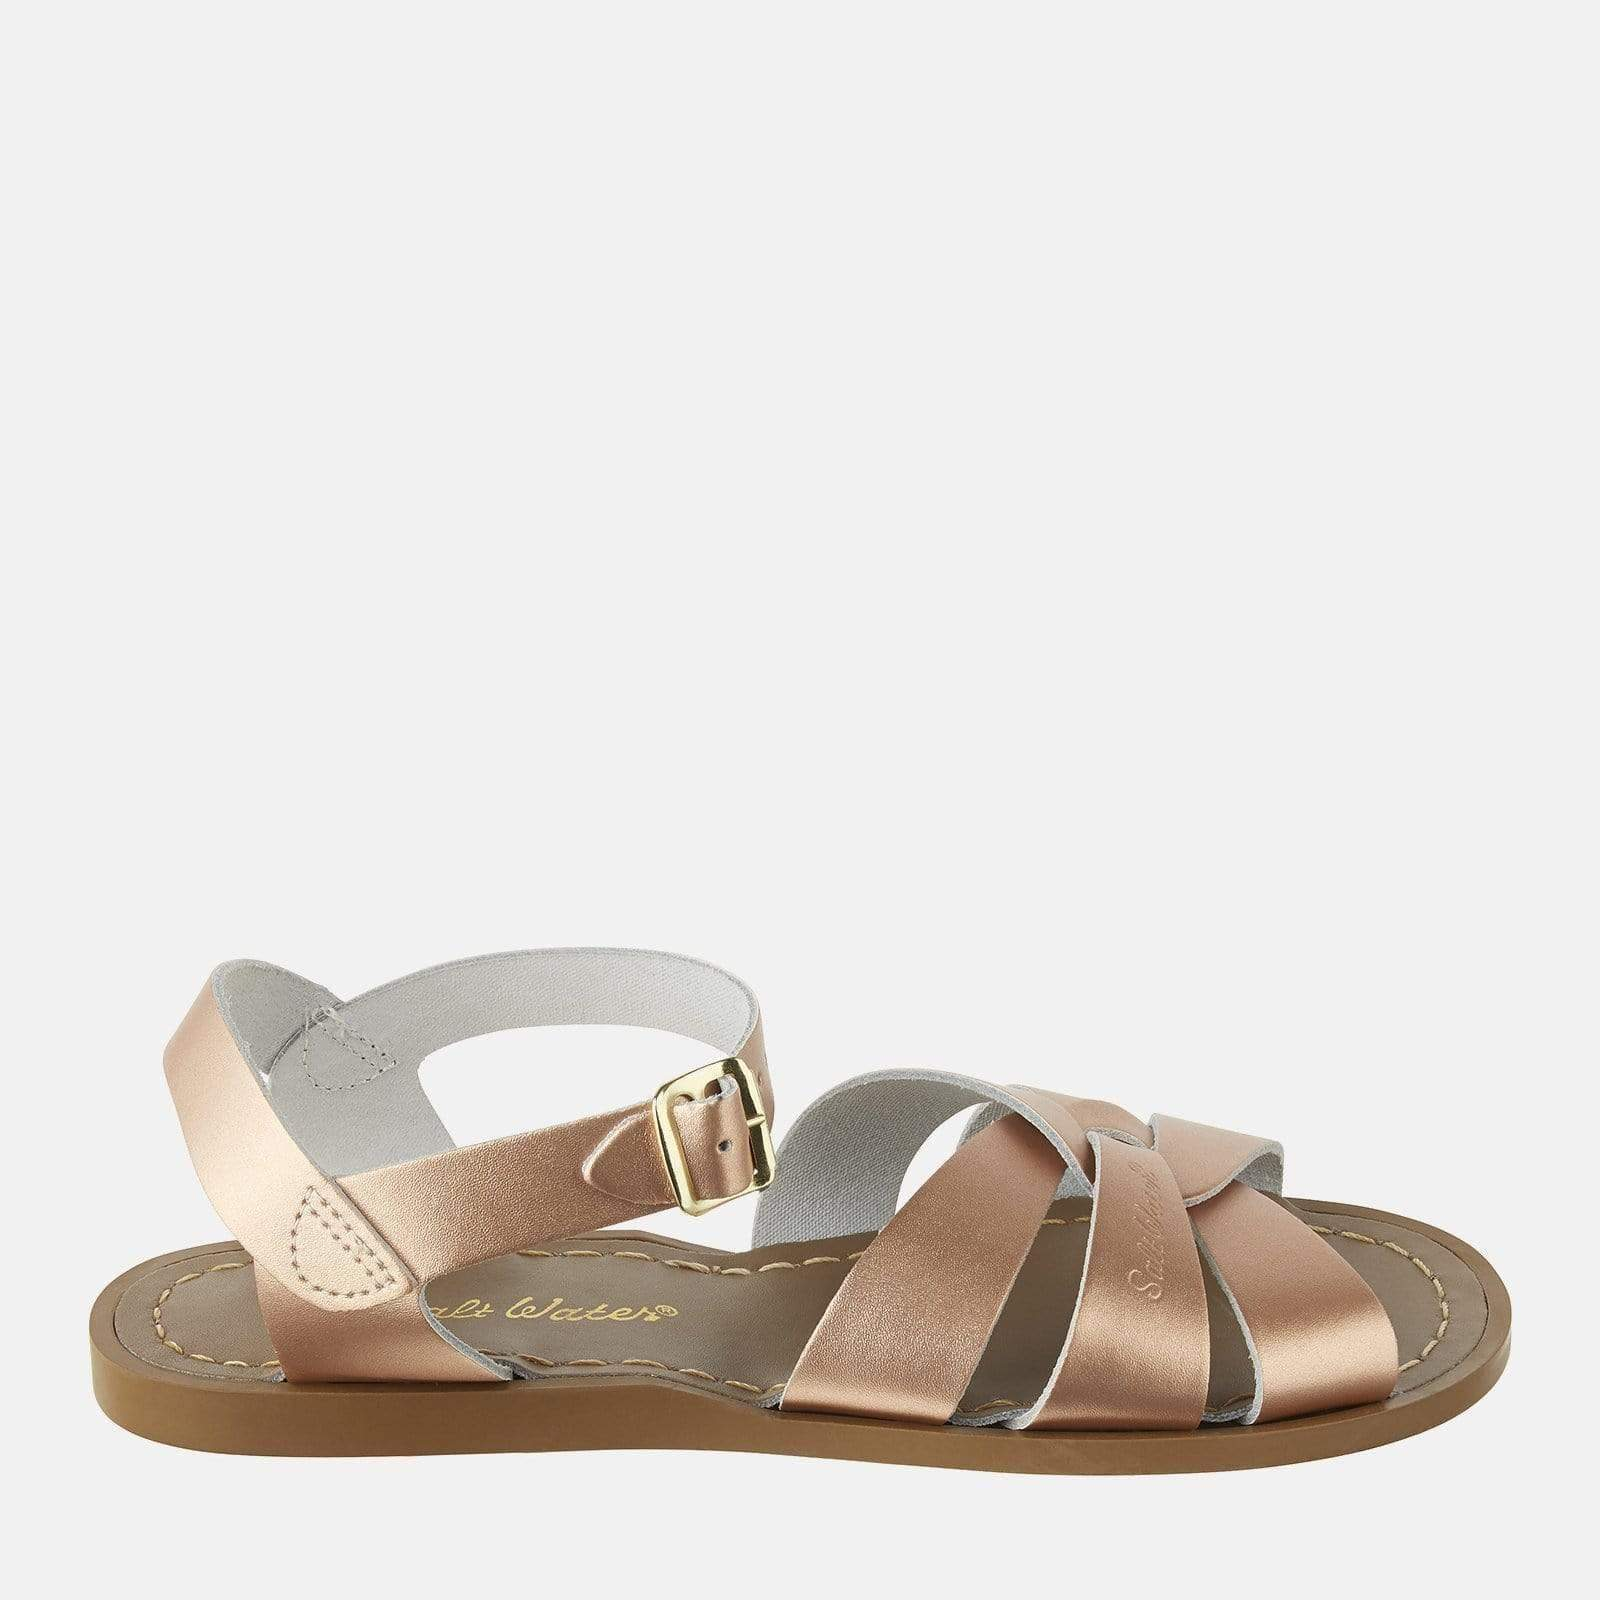 Salt-Water Footwear Salt-Water Original Rose Gold